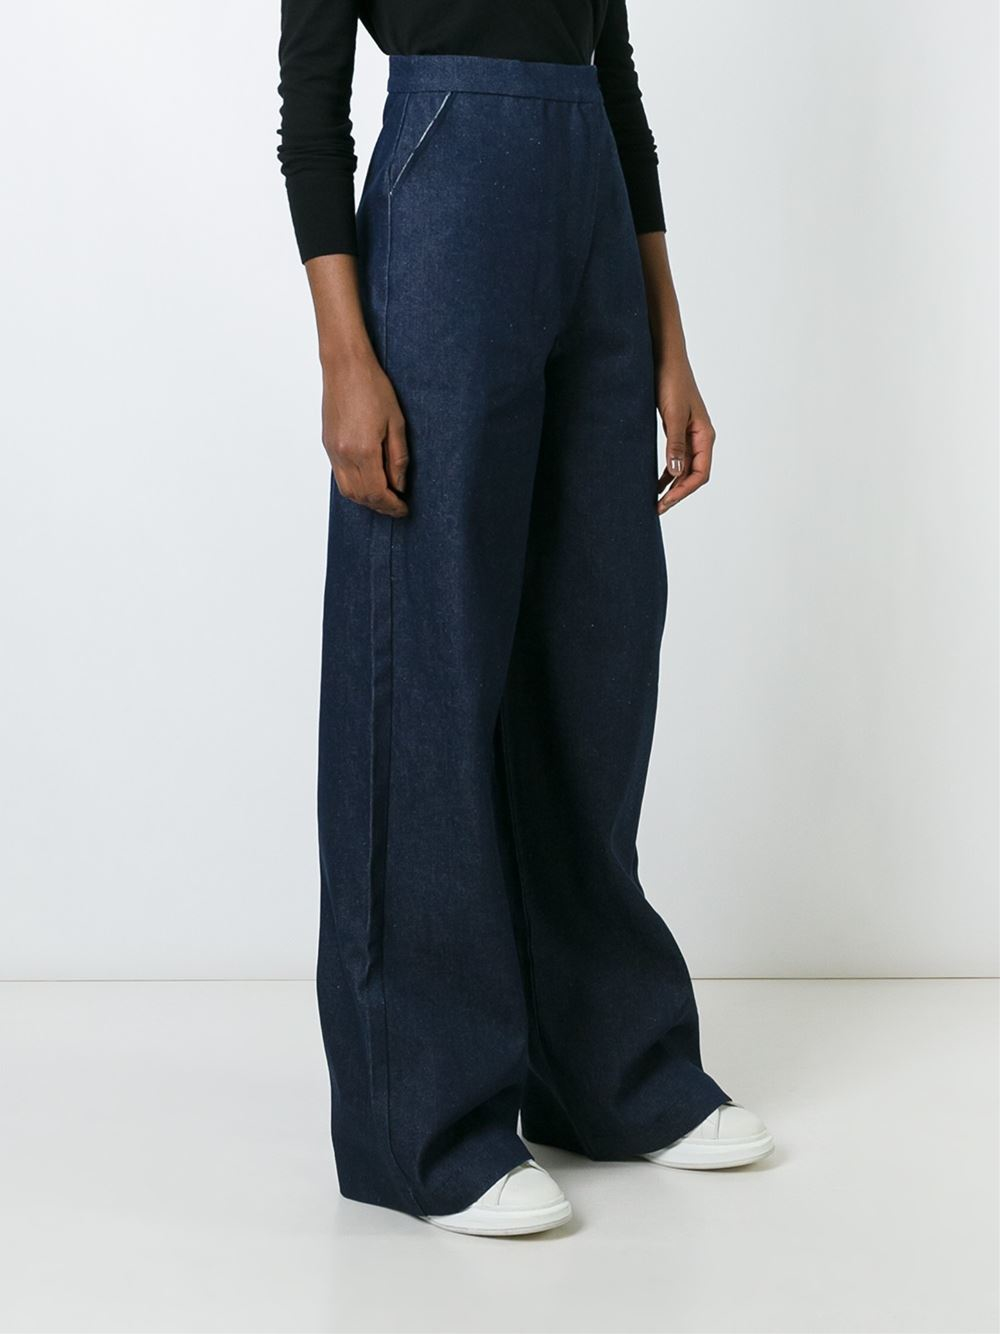 Charlie May Denim High Waisted Wide Leg Jeans in Blue